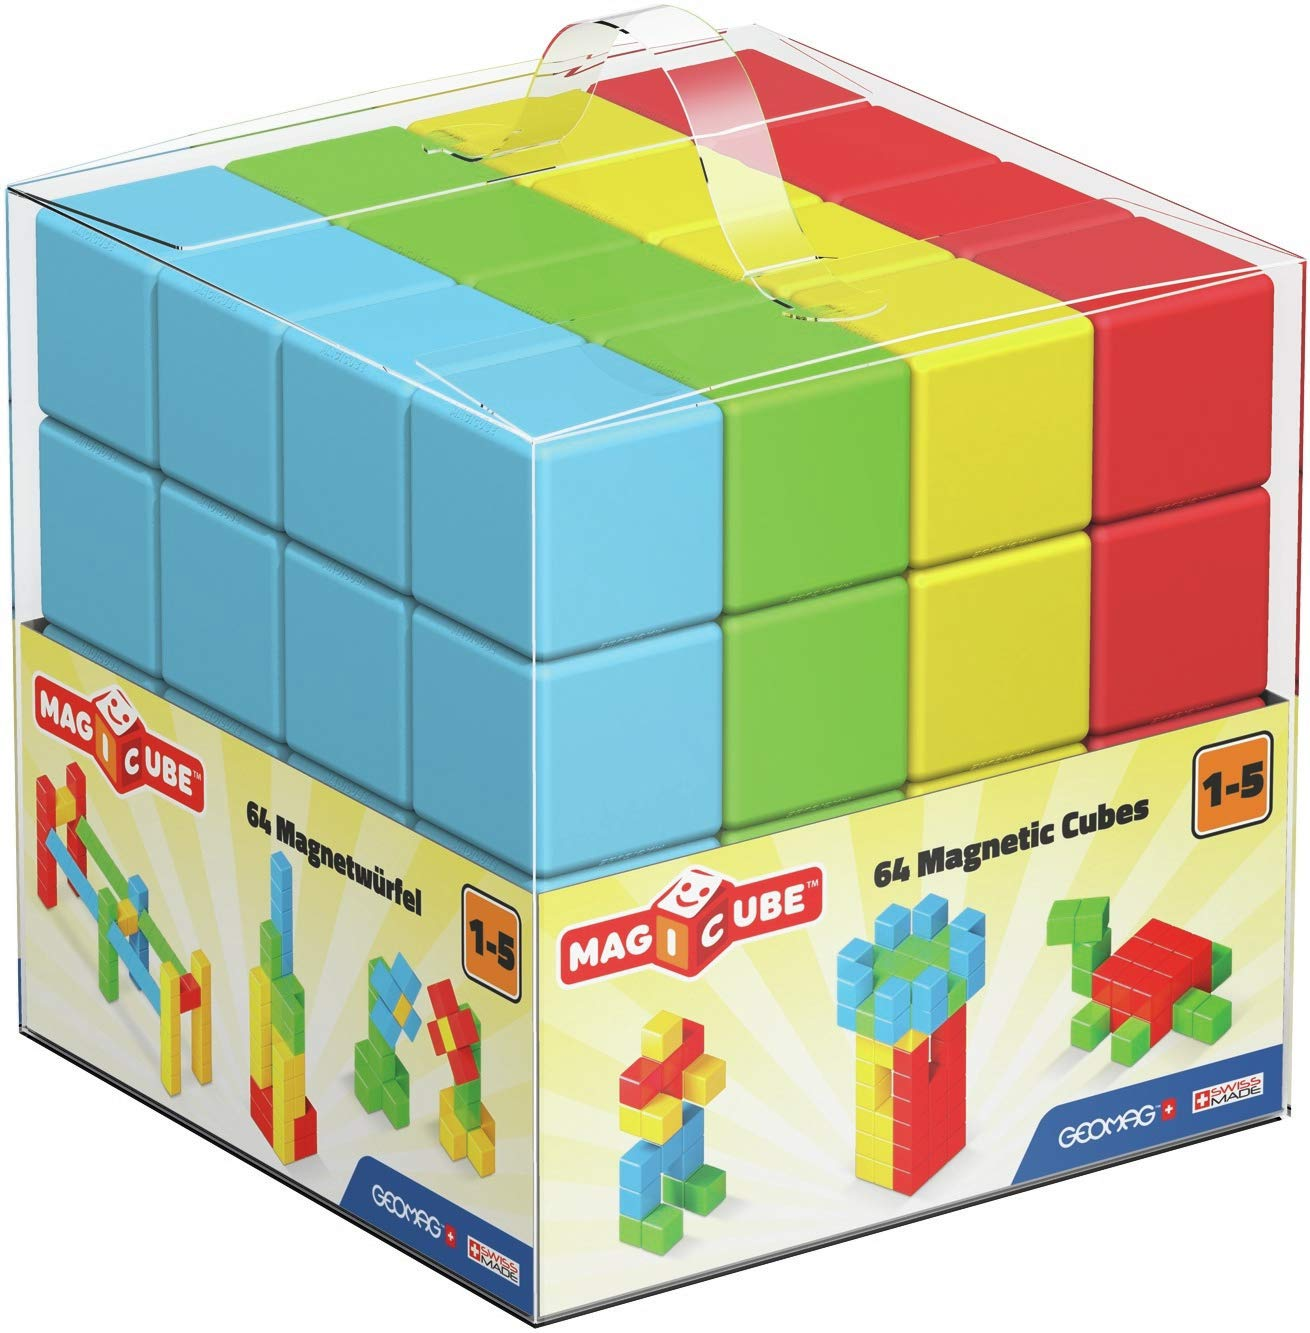 64 Magnetic Cubes for Creative Play Educational Construction Toys Set Kids Ages 1-5 Geomag MAGICUBE Pre-School